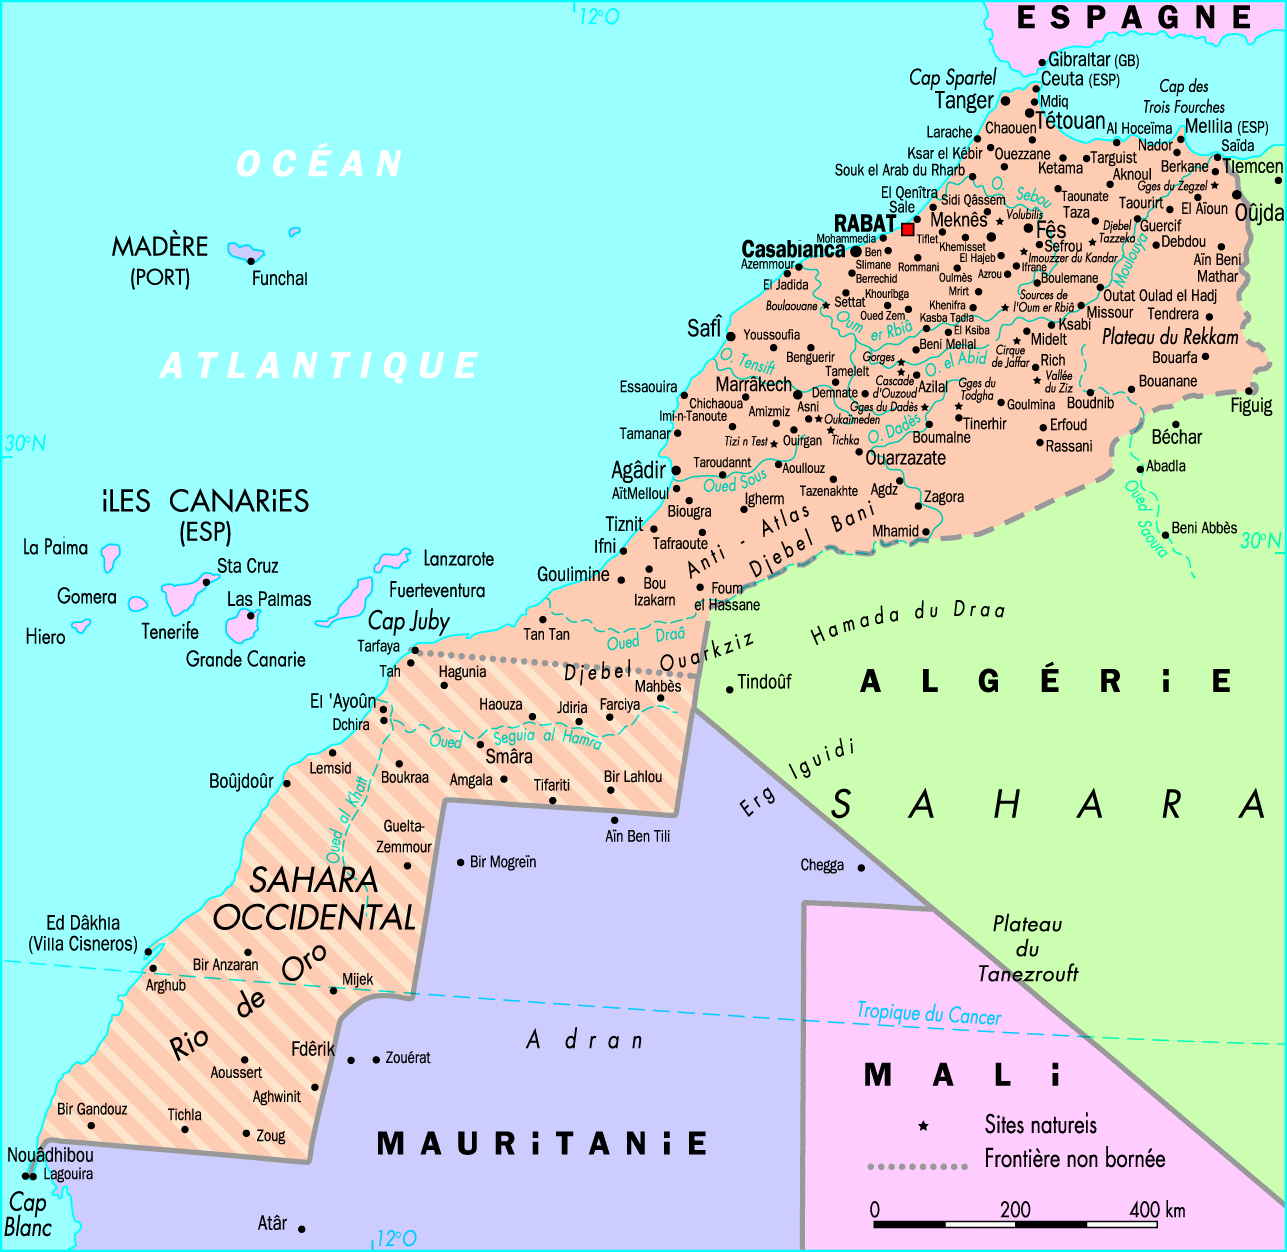 Maps of countries Morocco